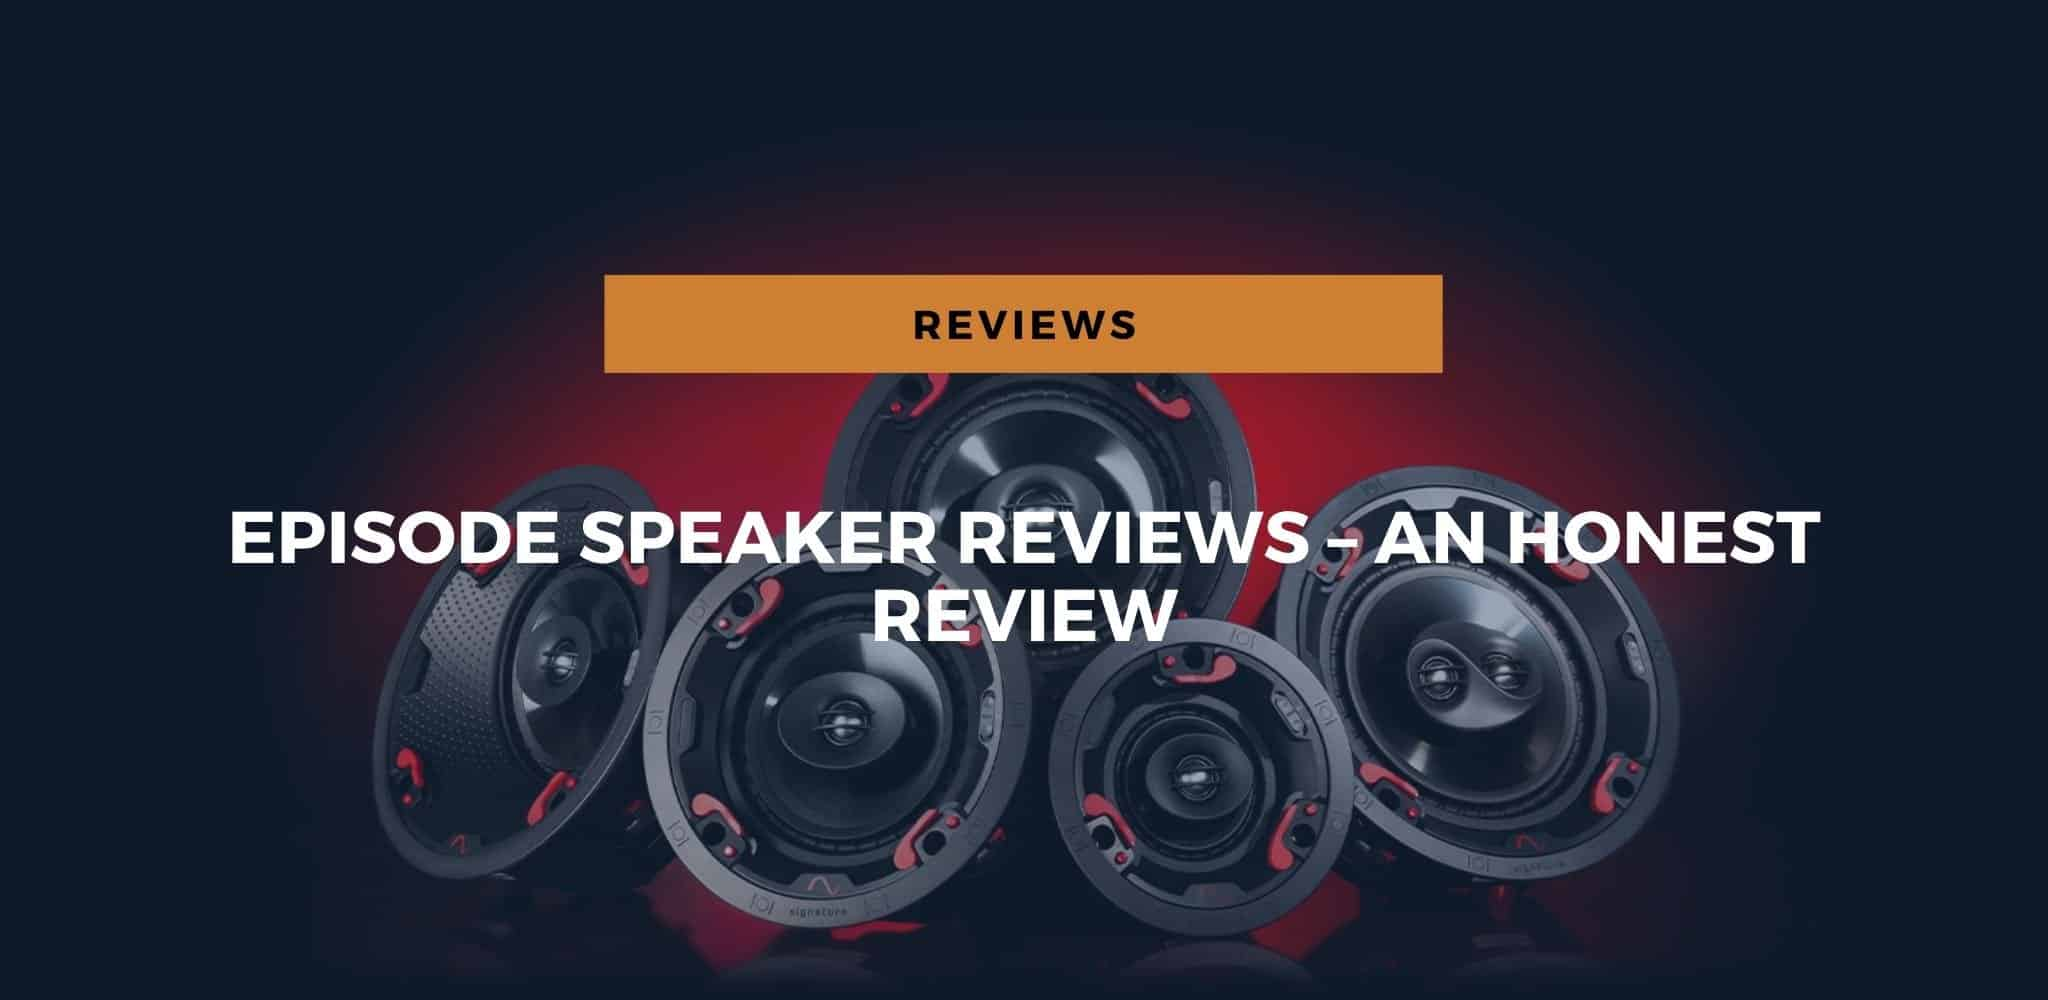 best episode speaker reviews